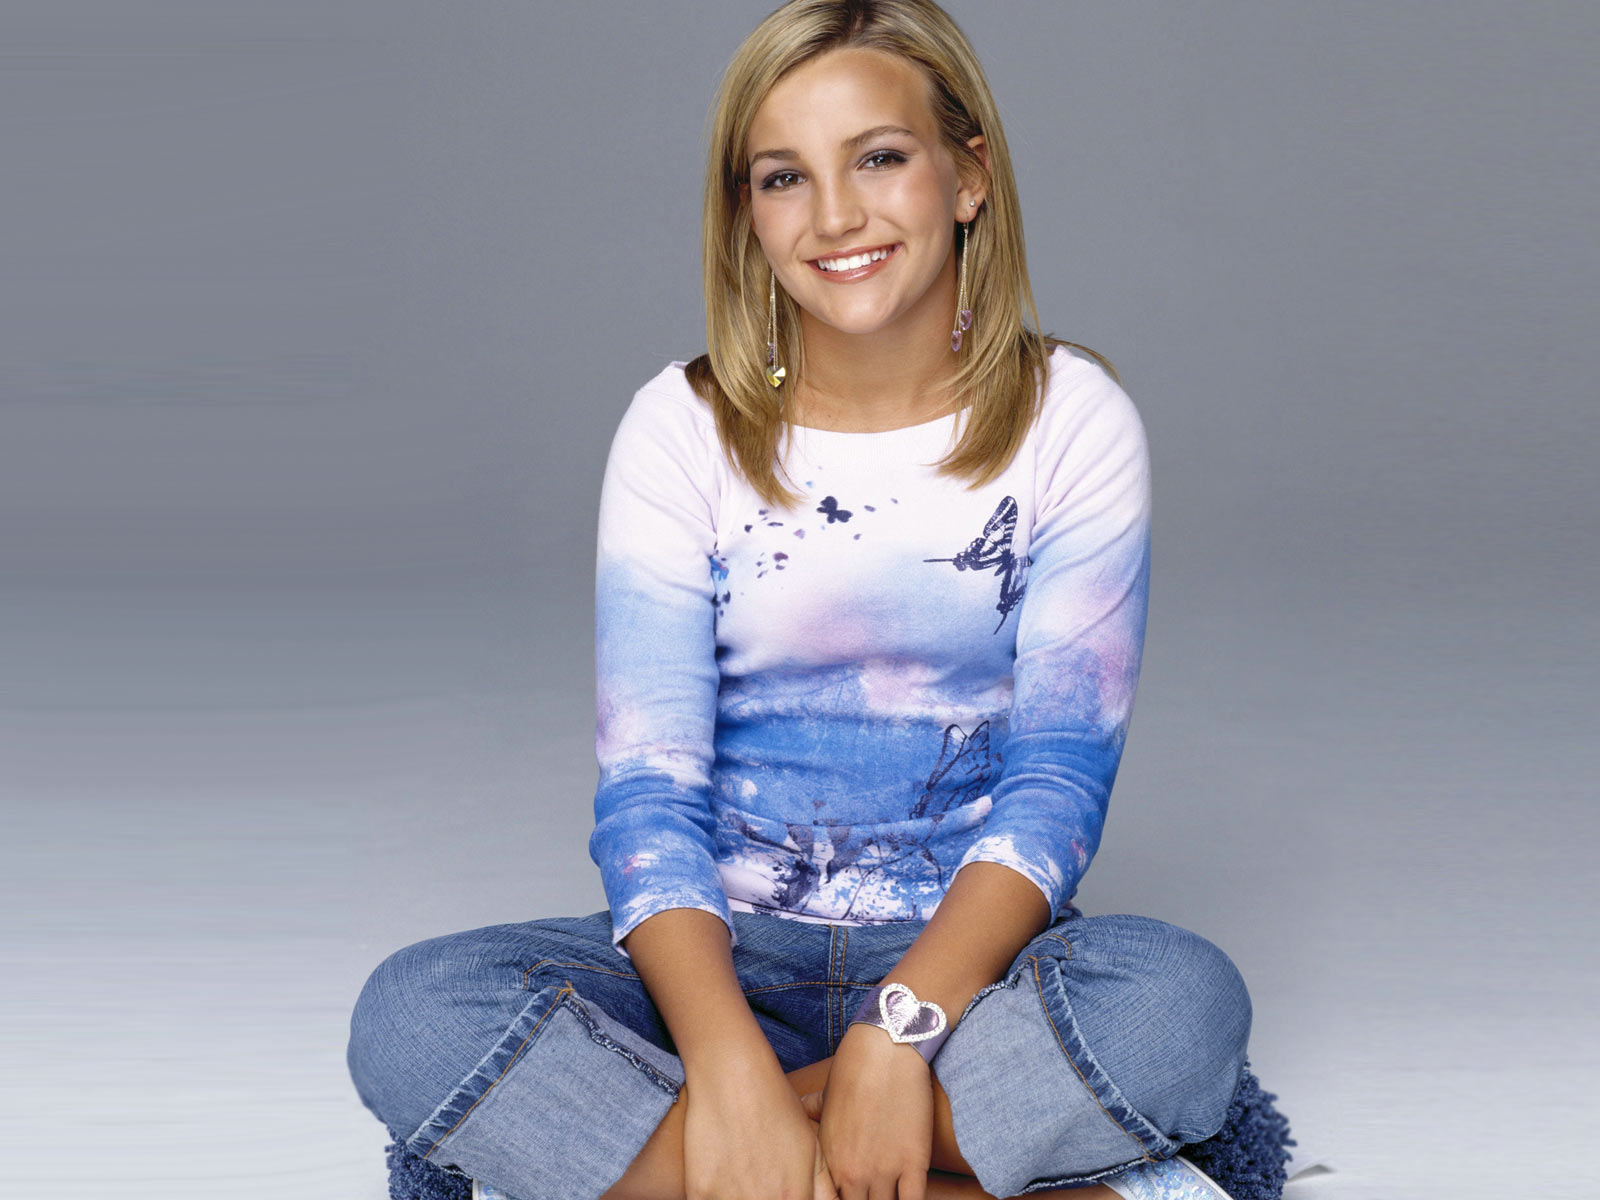 jamie lynn spears follow me